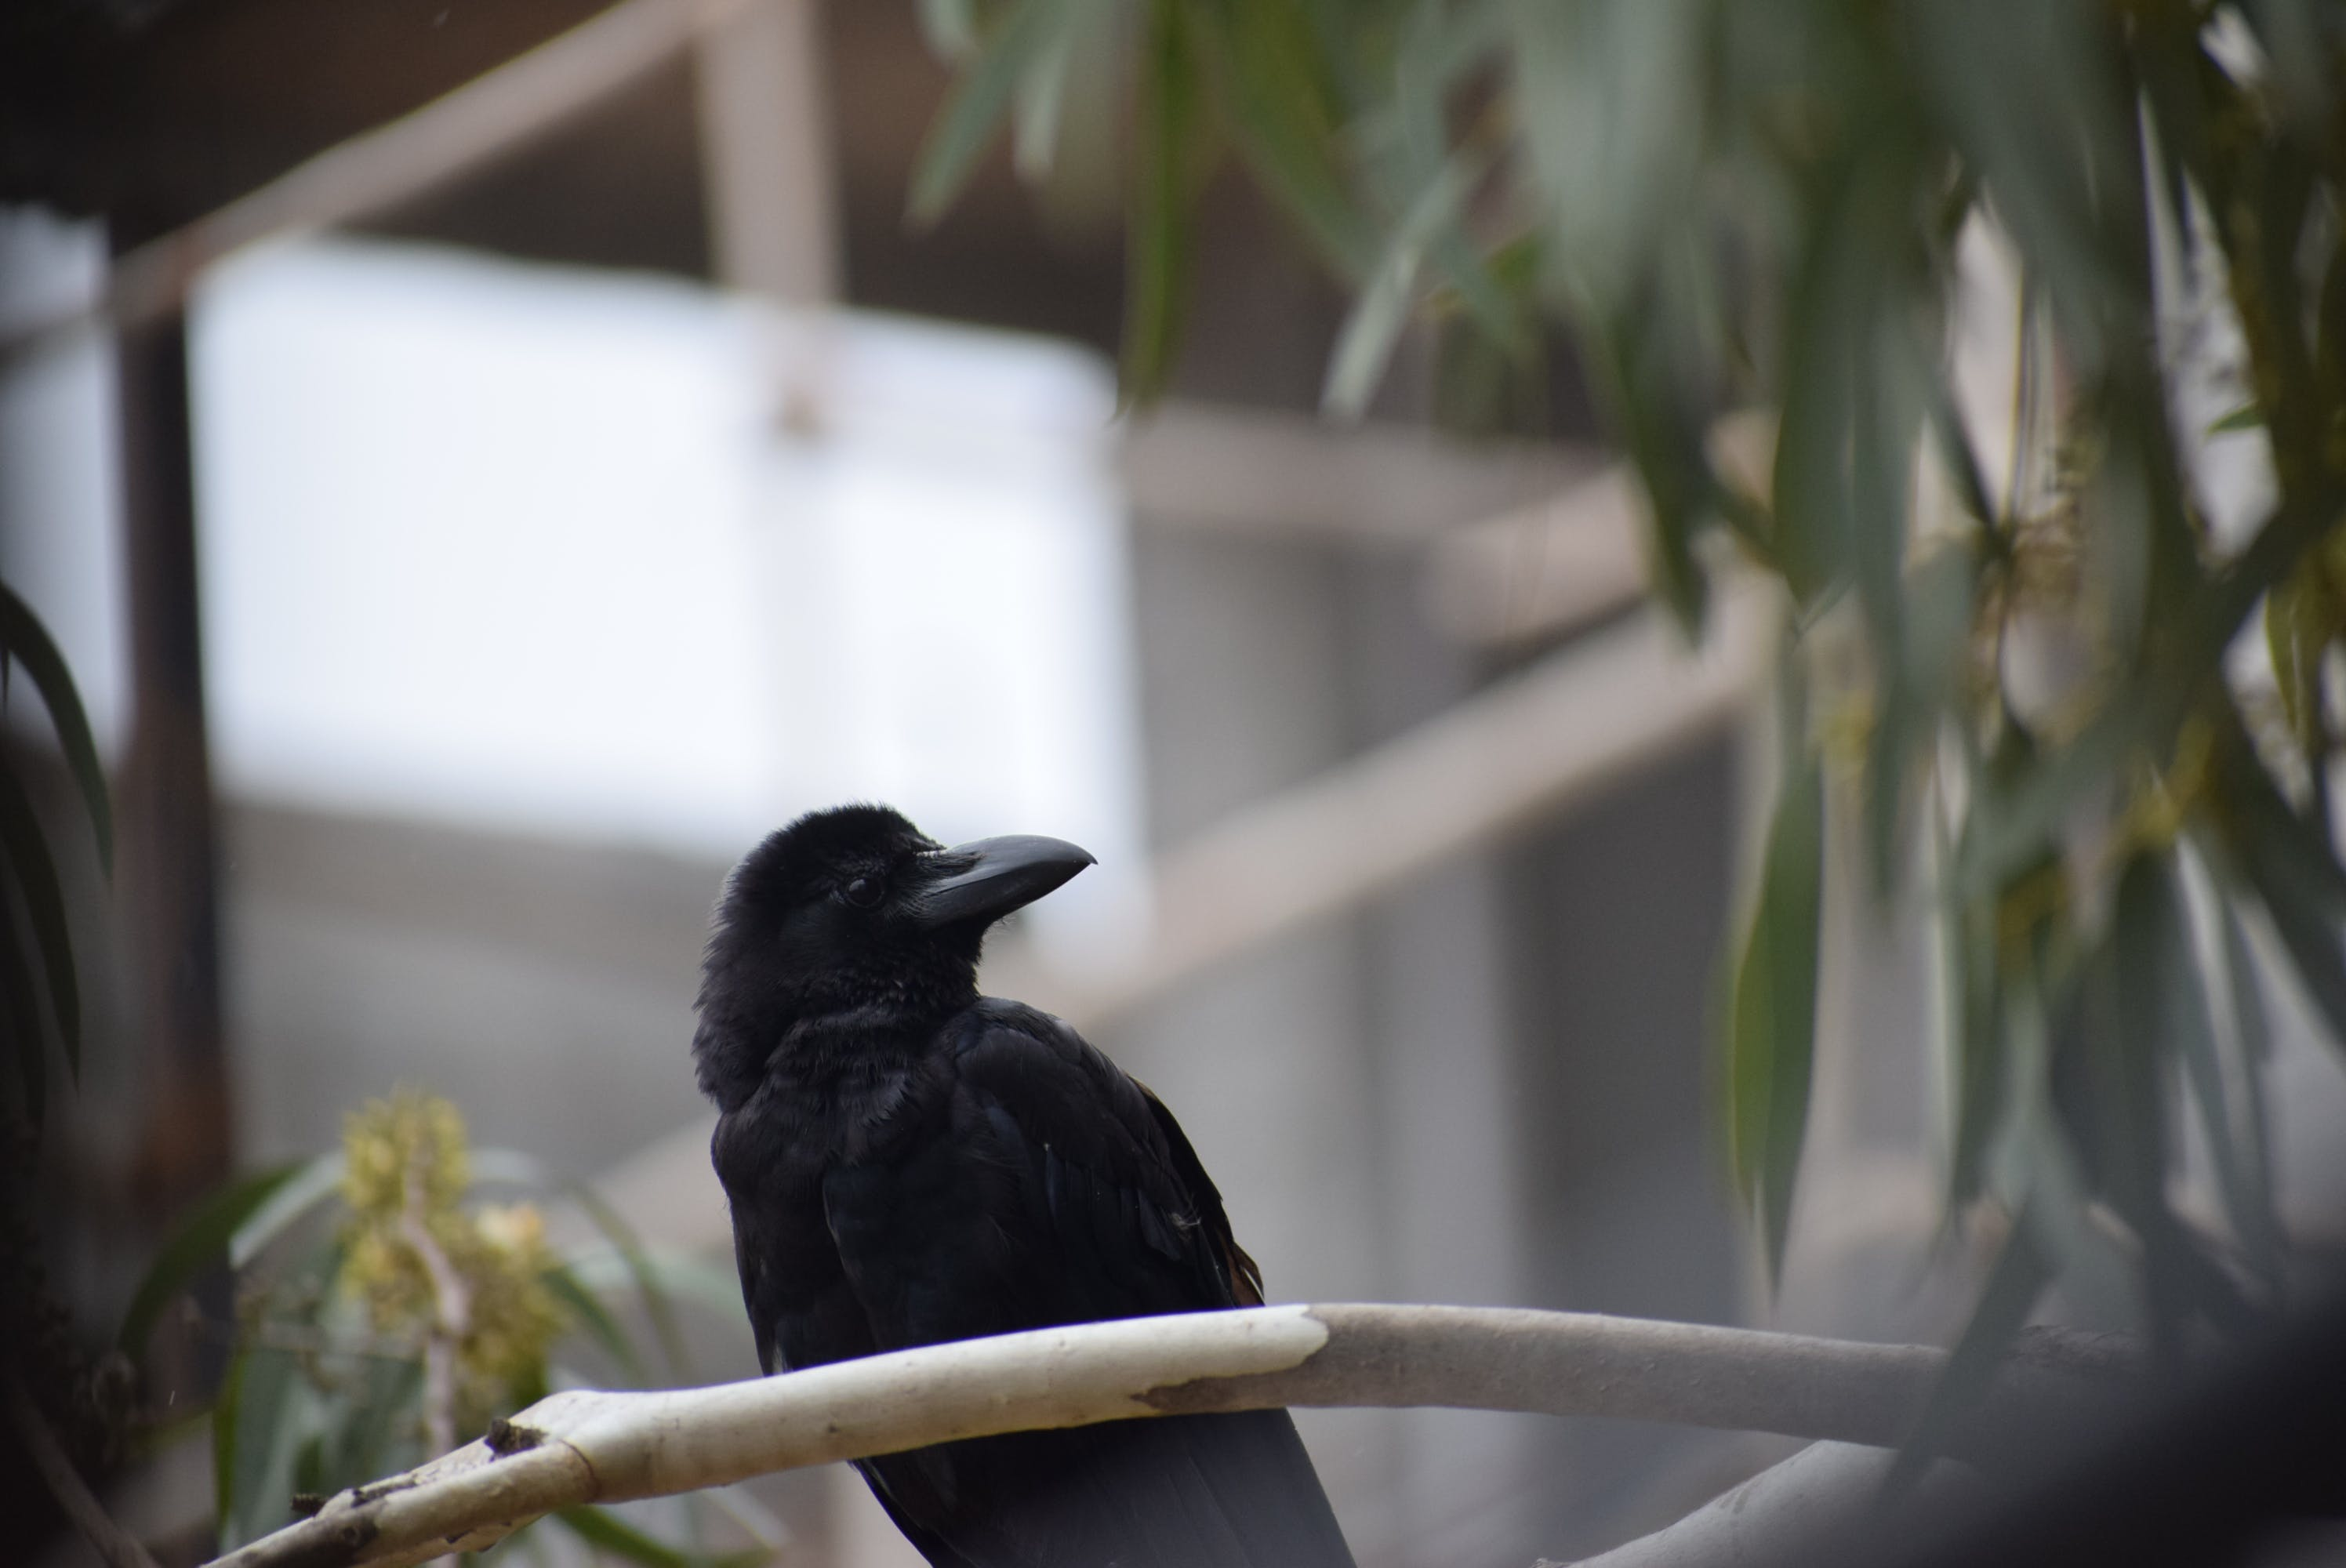 Close-Up Photo of Black Crow